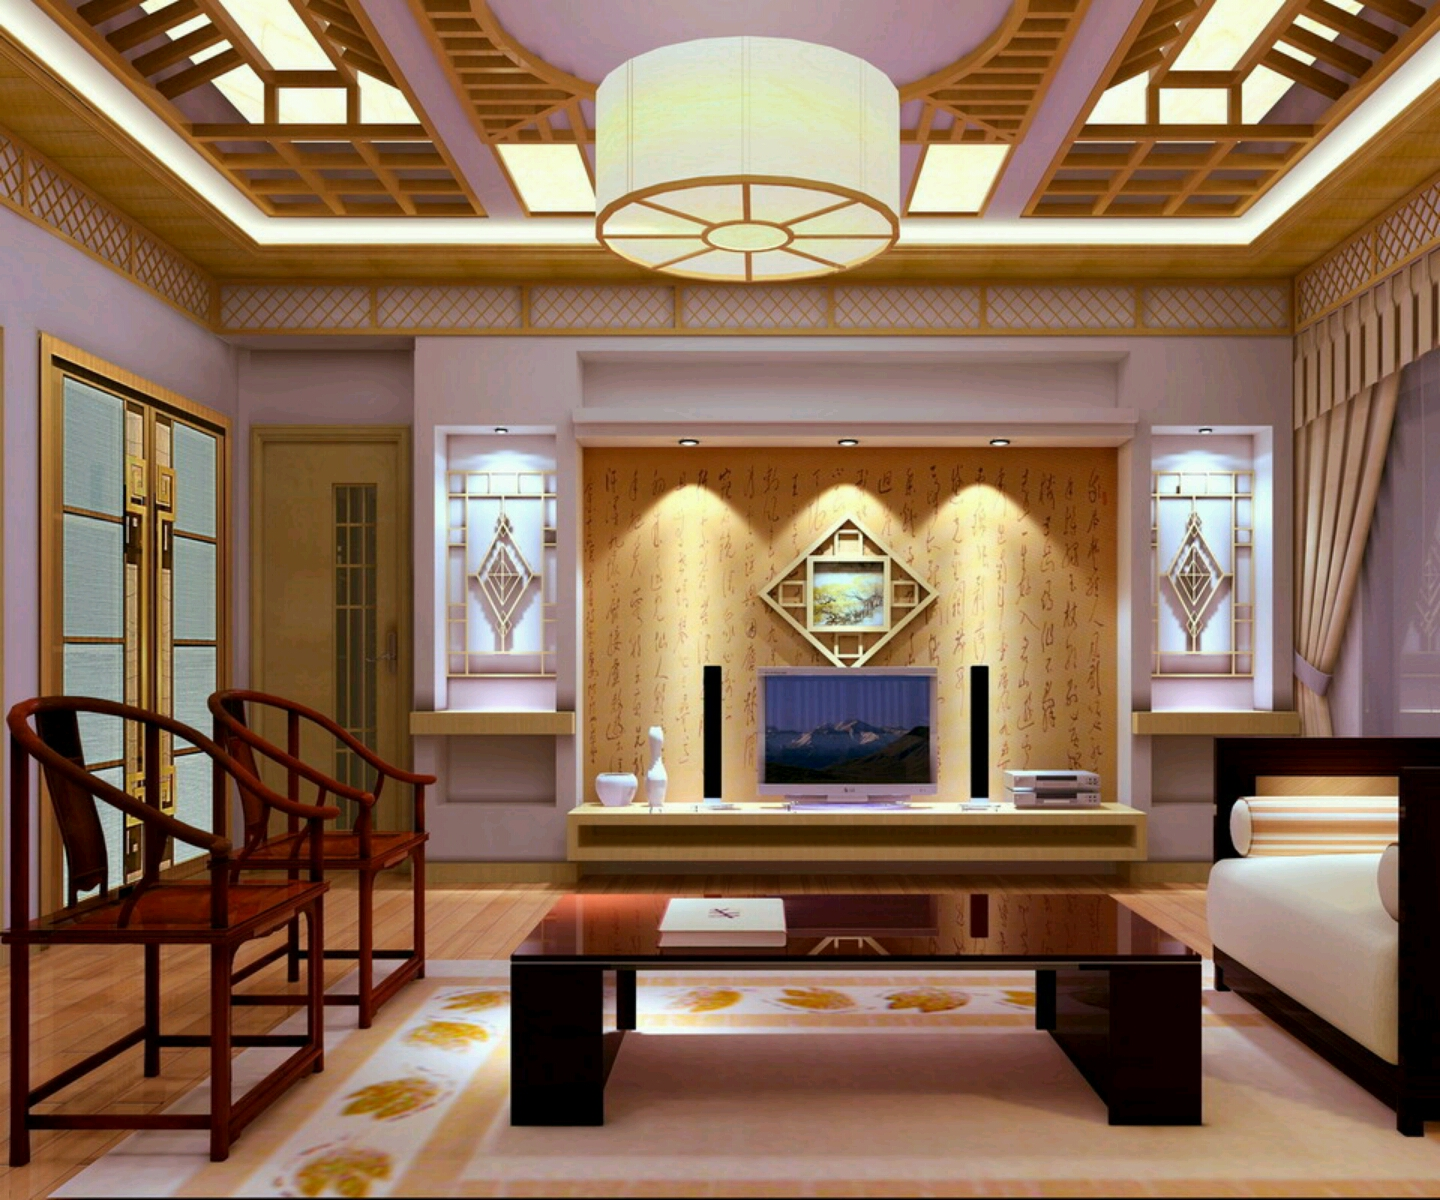 New home designs latest homes interior designs studyrooms for Interior designs houses pictures